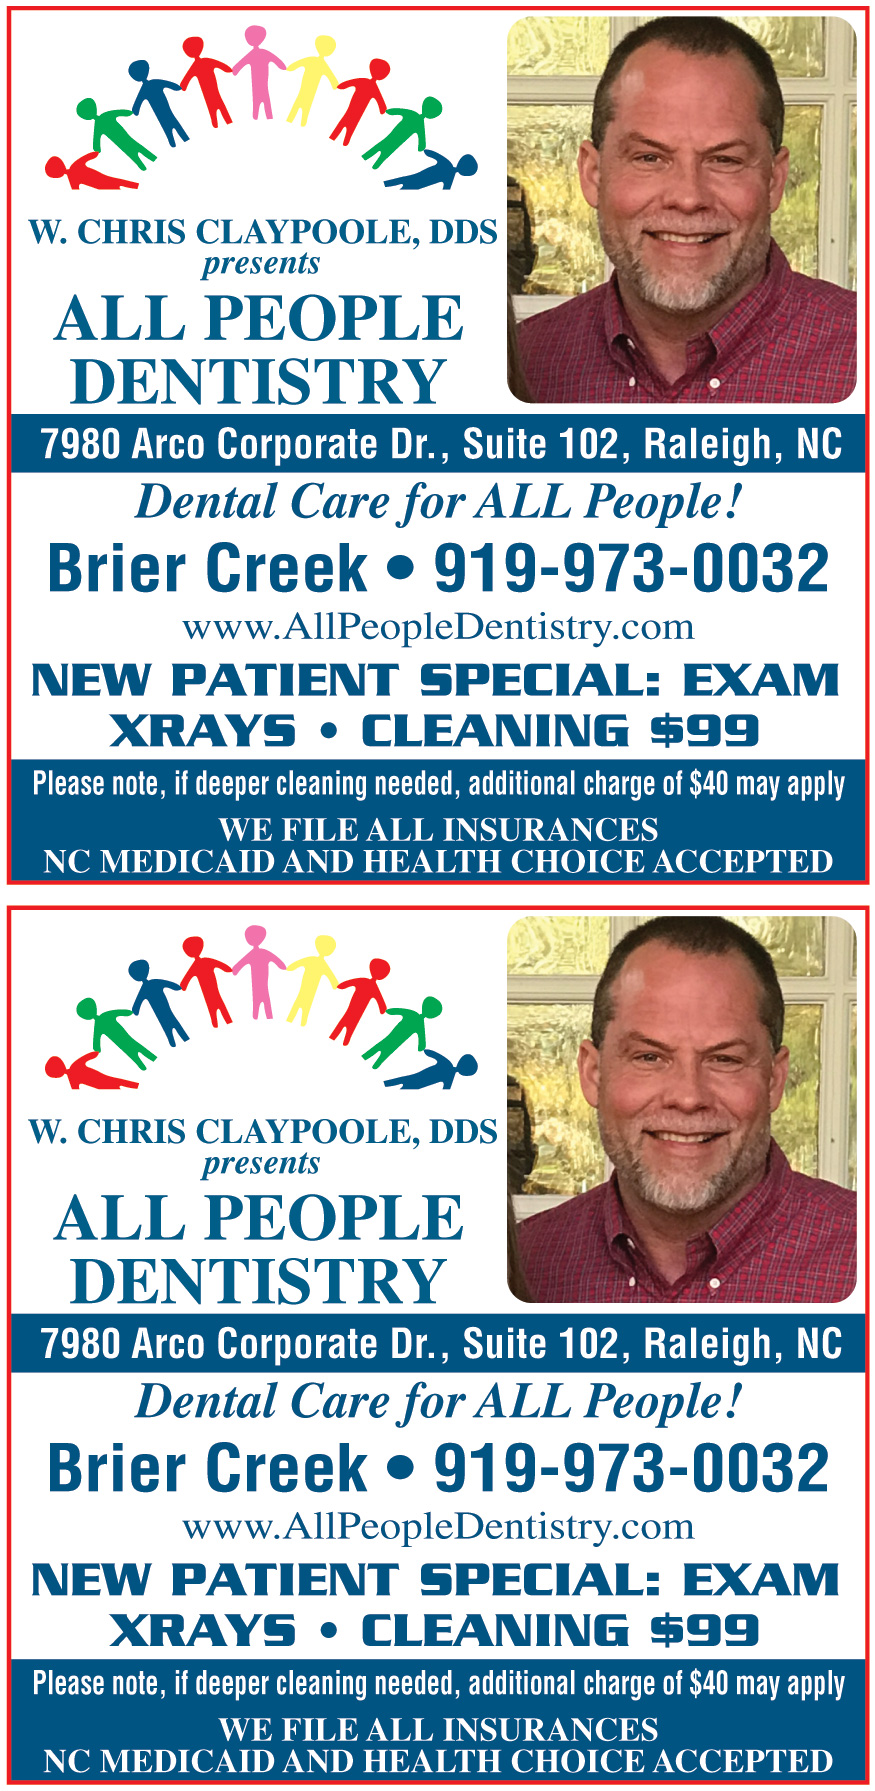 ALL PEOPLE DENTISTRY